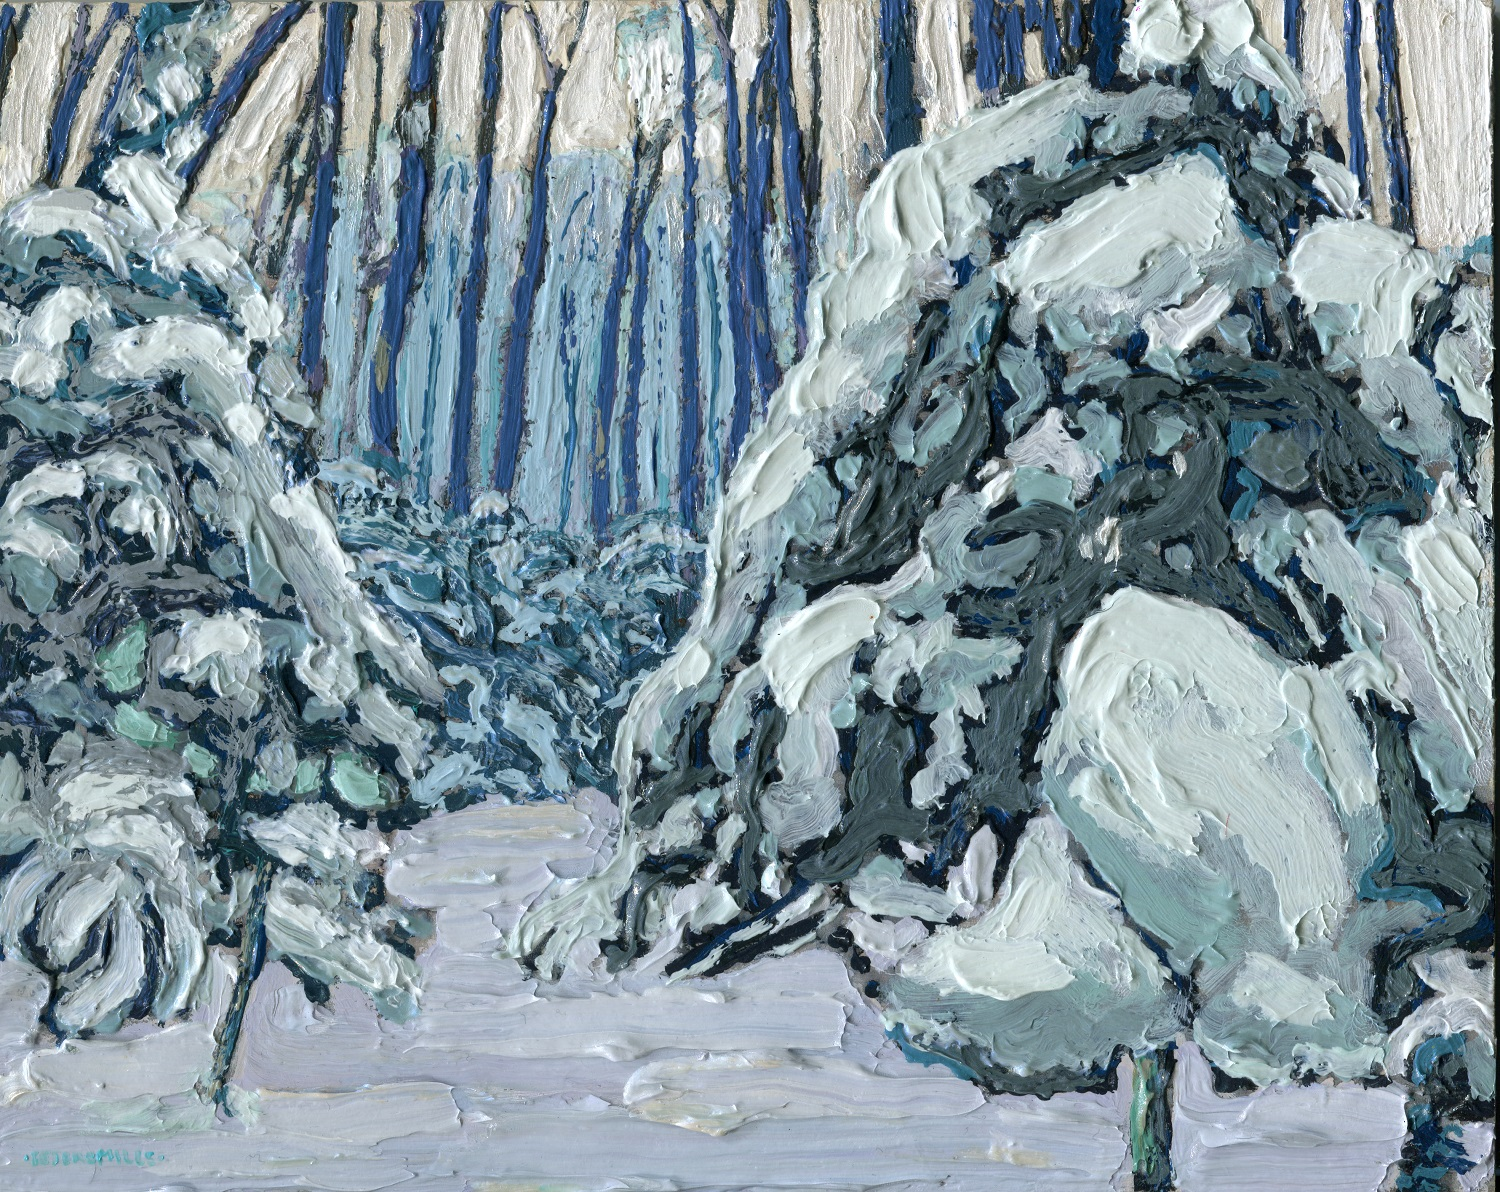 Snowy Woods Algonquin Art Centre A Canadian Art Gallery In